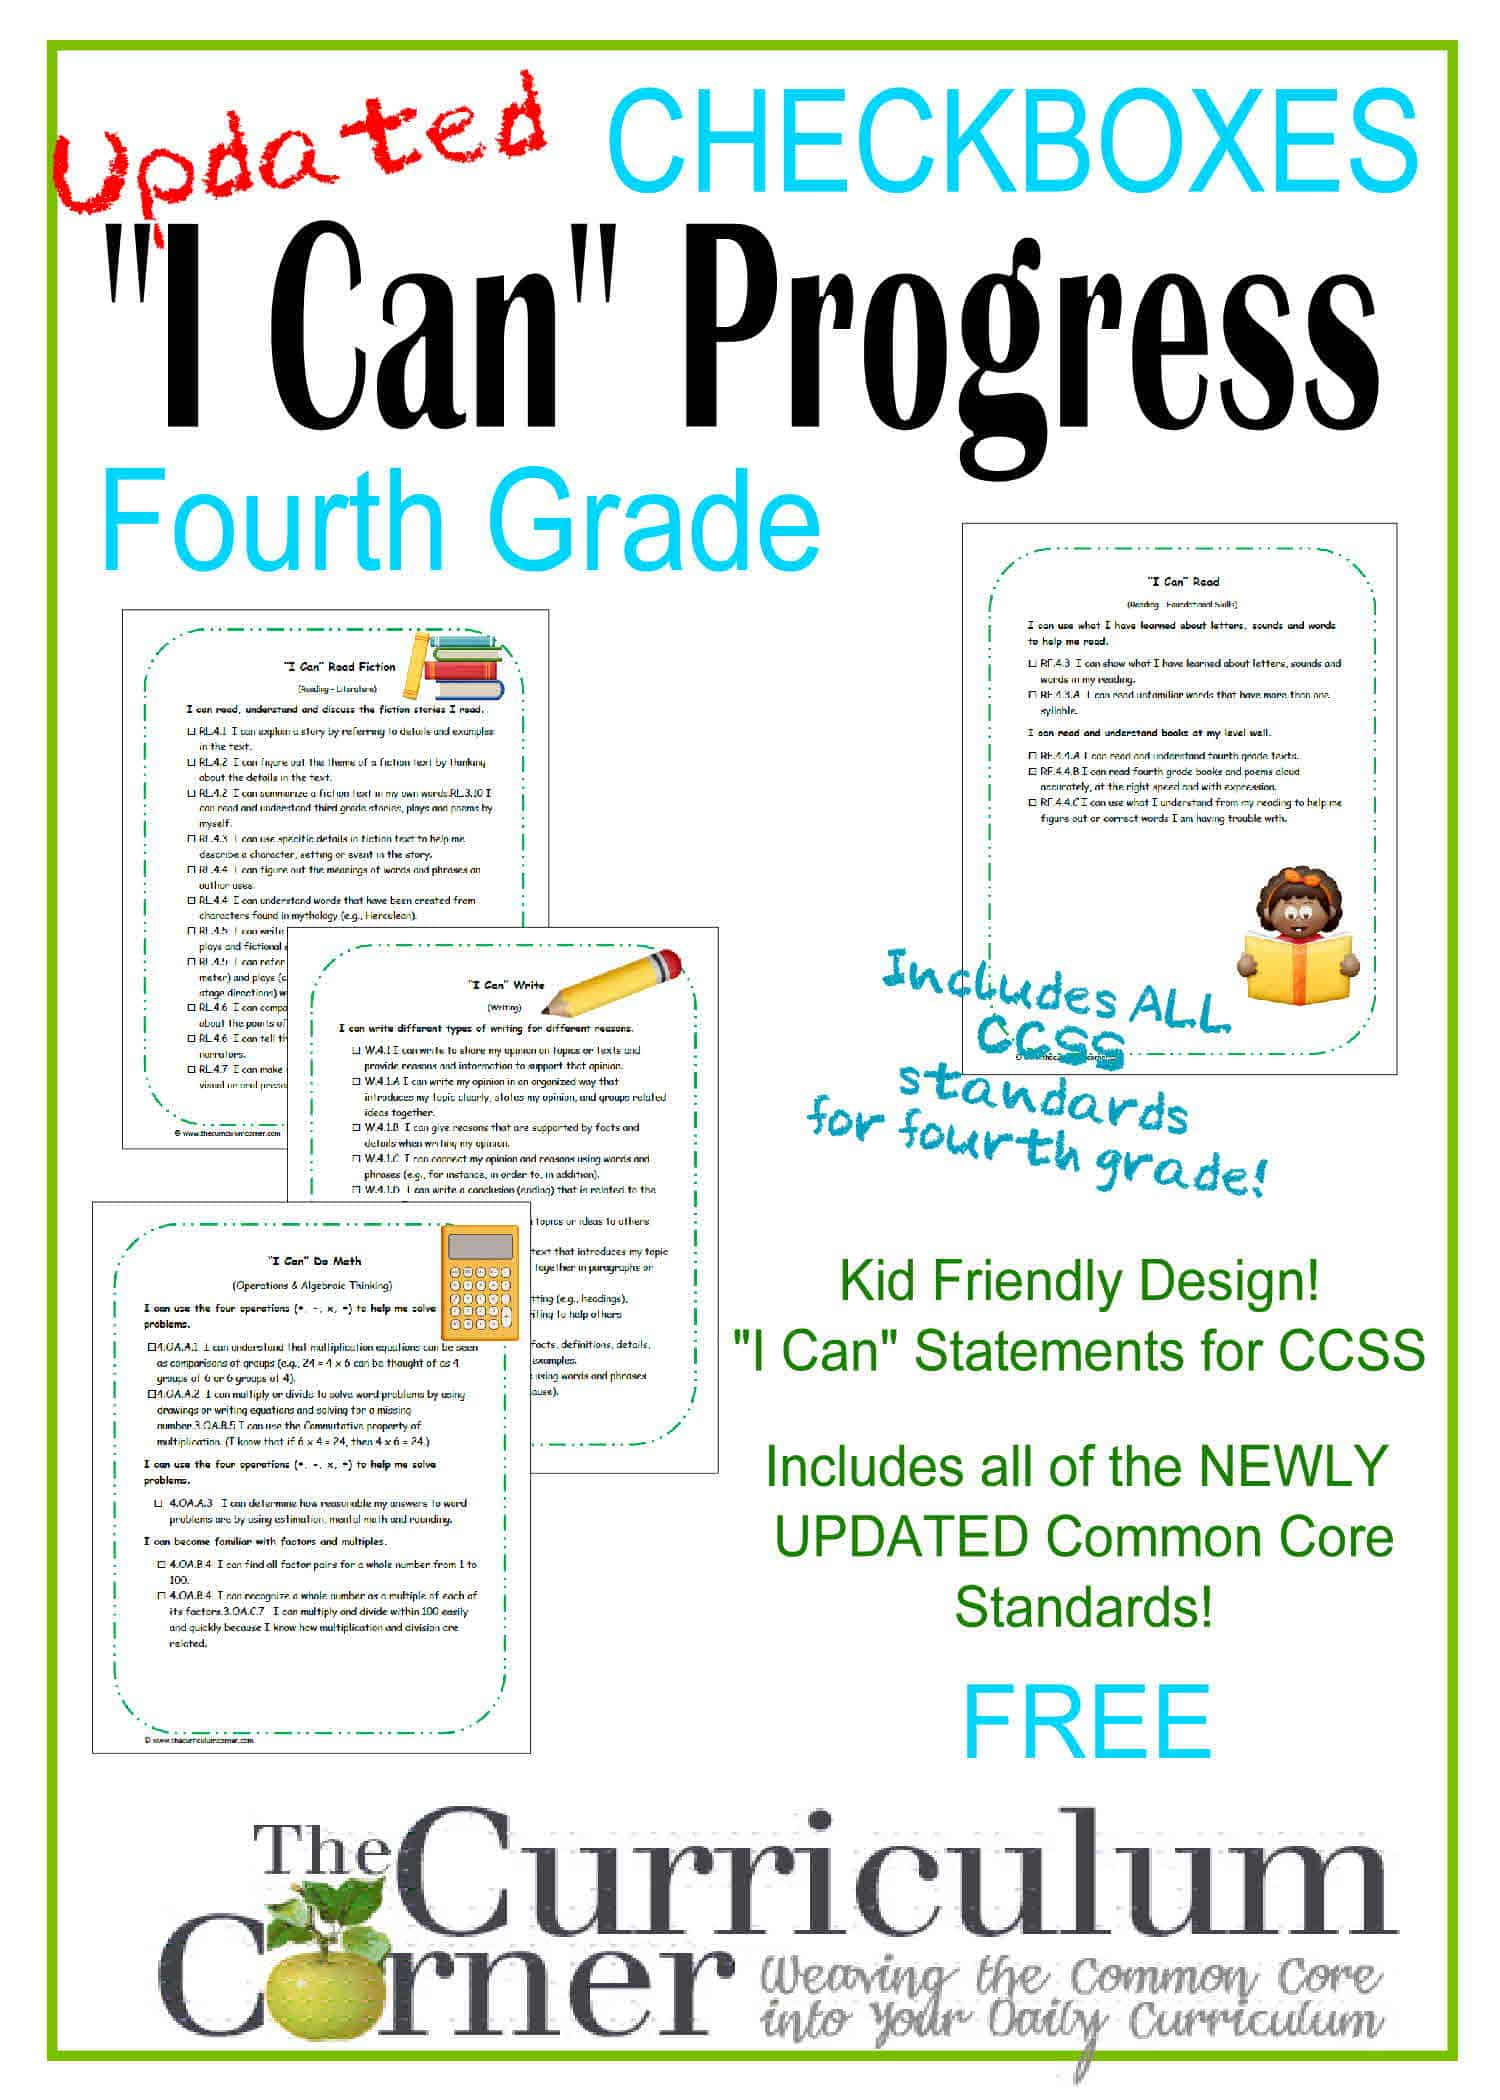 Kid Clip Art I Can Statements 4th Grade CCSS Checkboxes